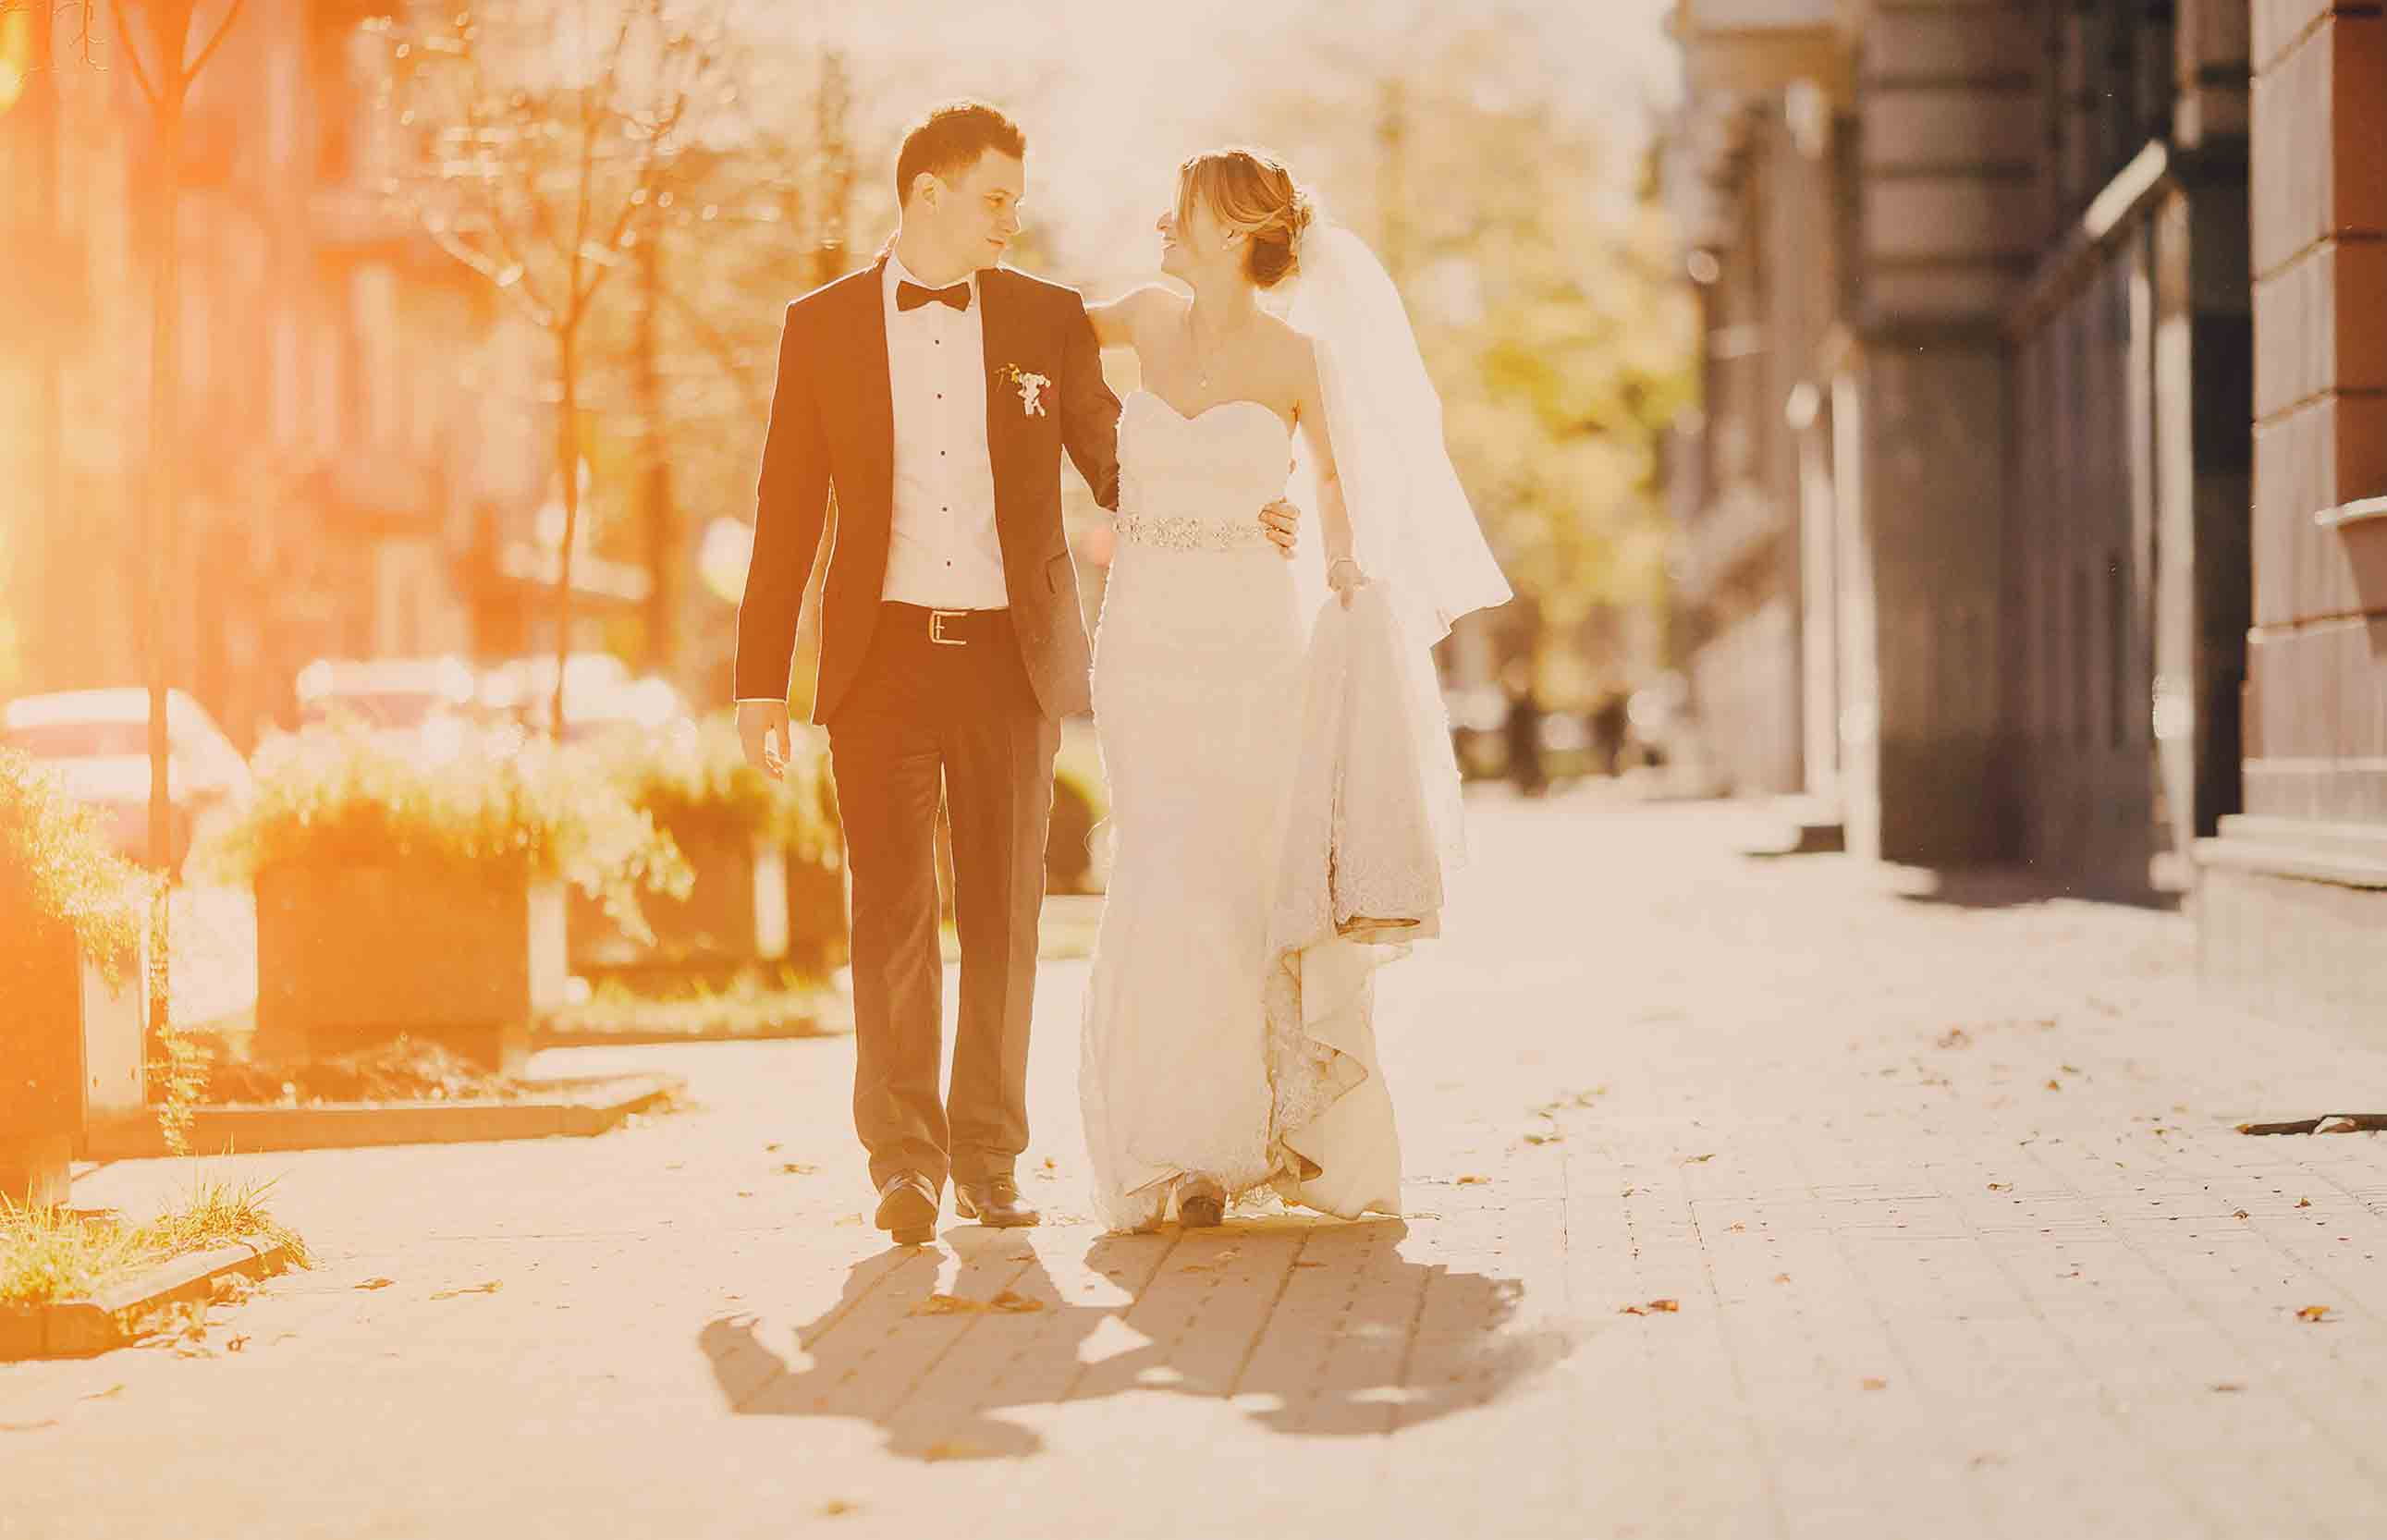 And you are not confused by this photo of the newlyweds